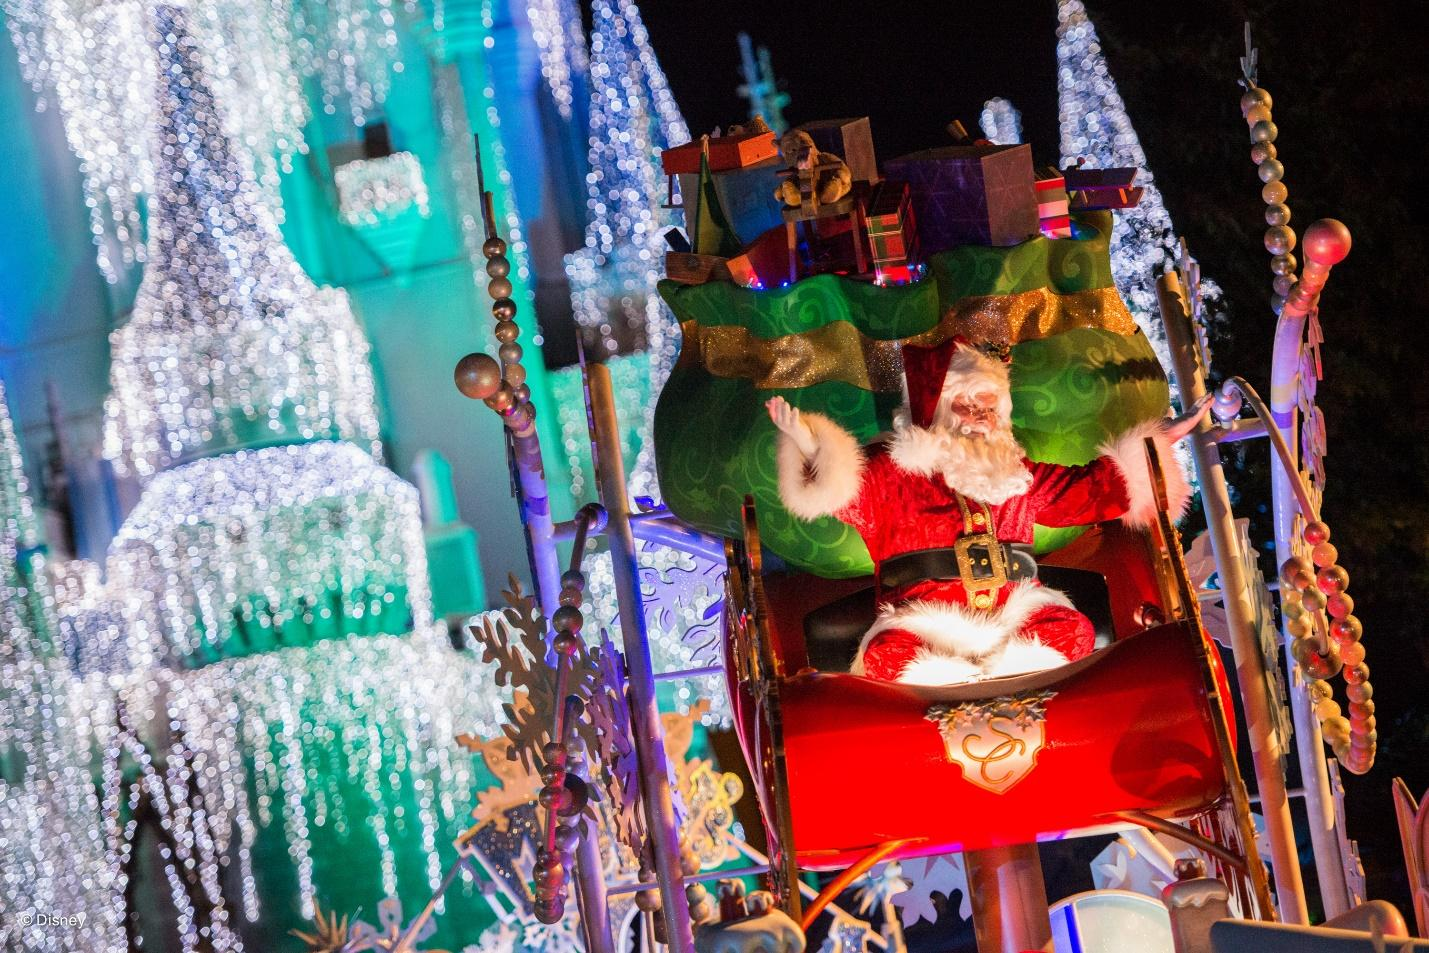 Christmas decorations at Disney World during a busy, but magical time of the year!